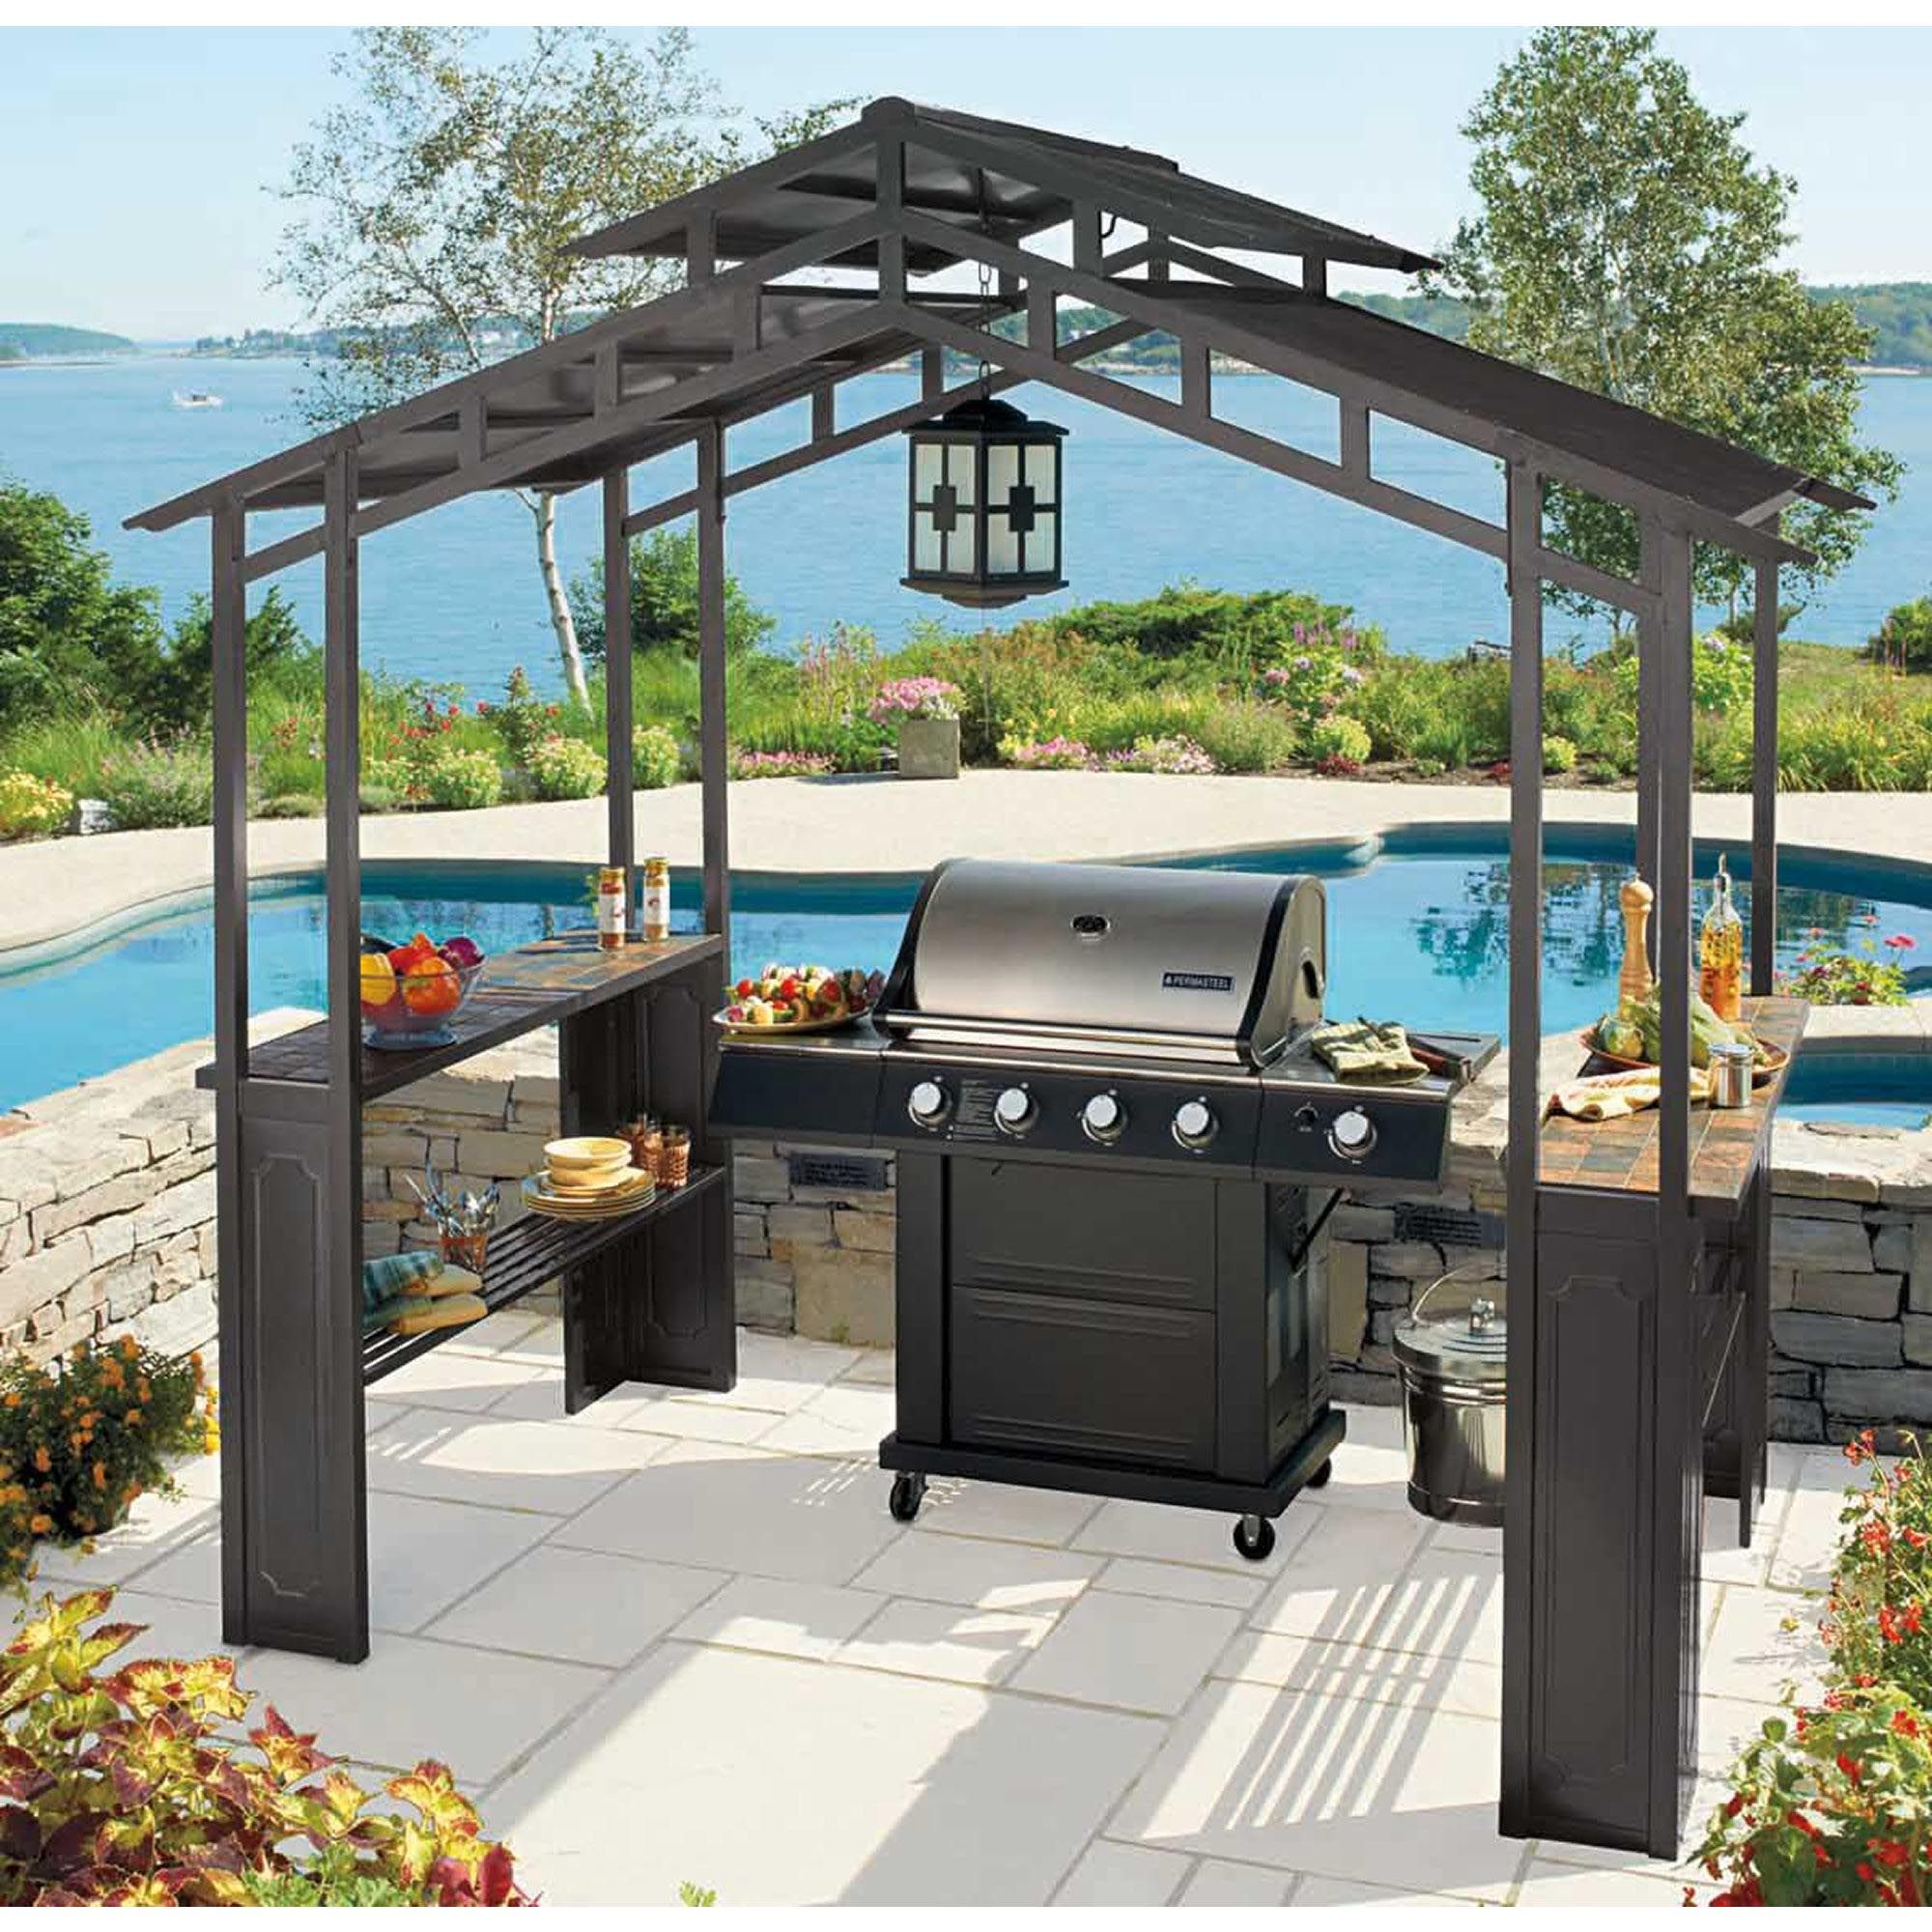 Living Home Outdoors Aluminum Hardtop Grill Gazebo